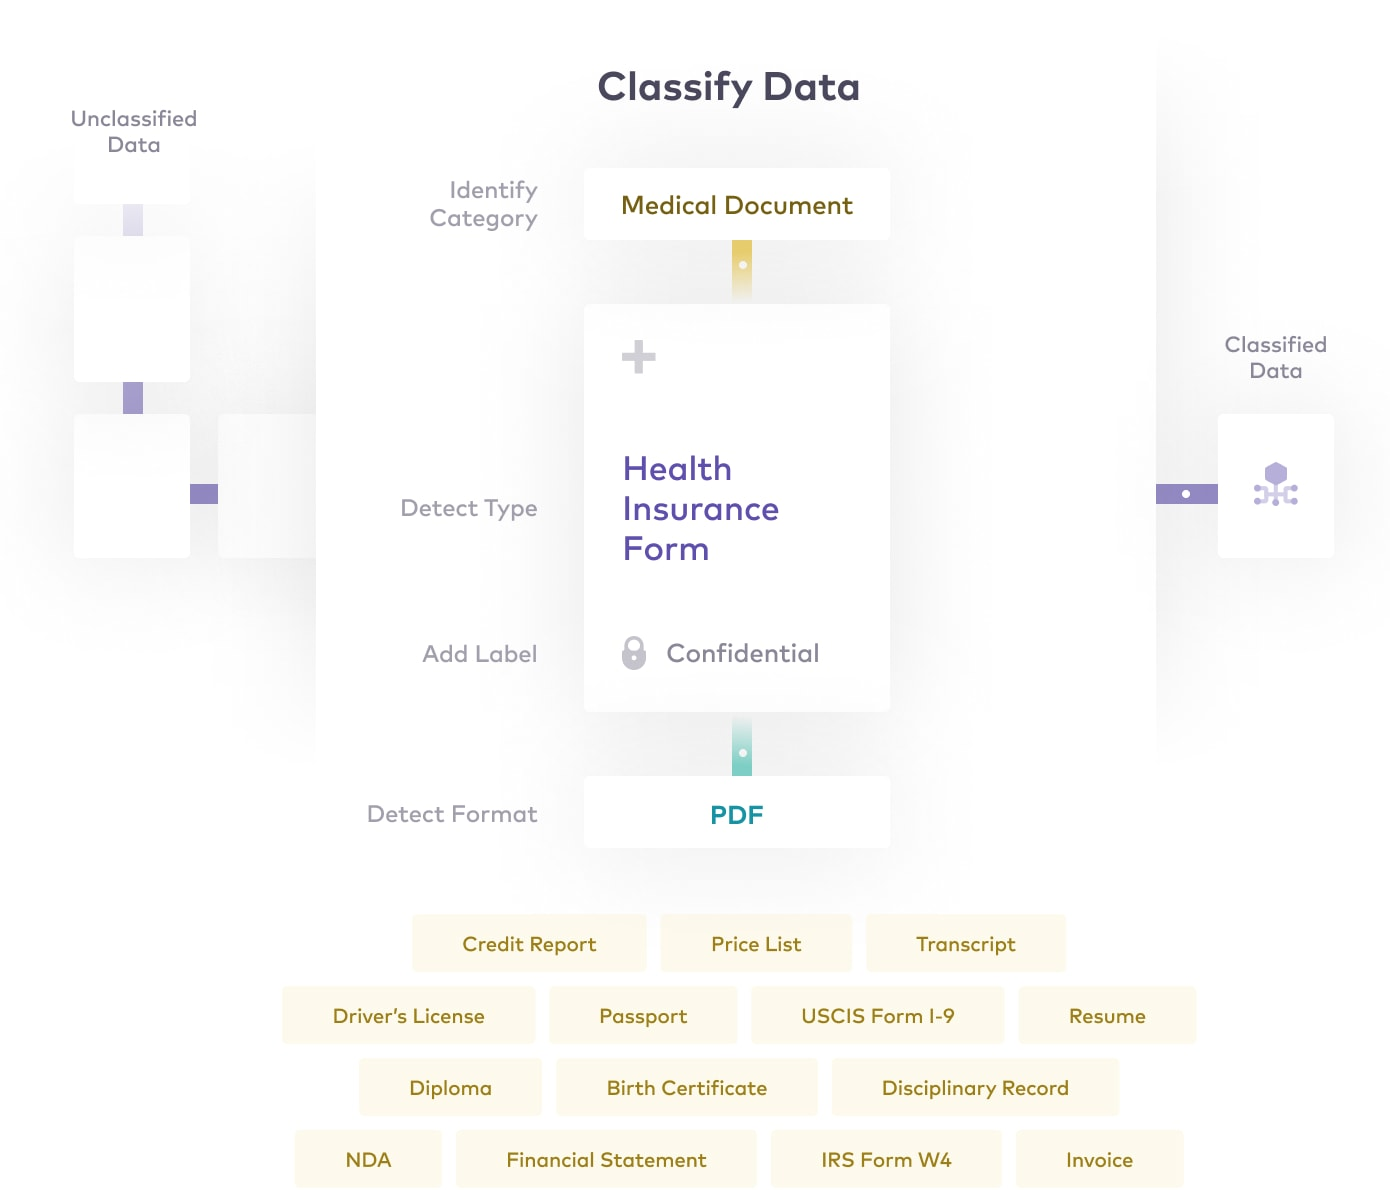 classify data